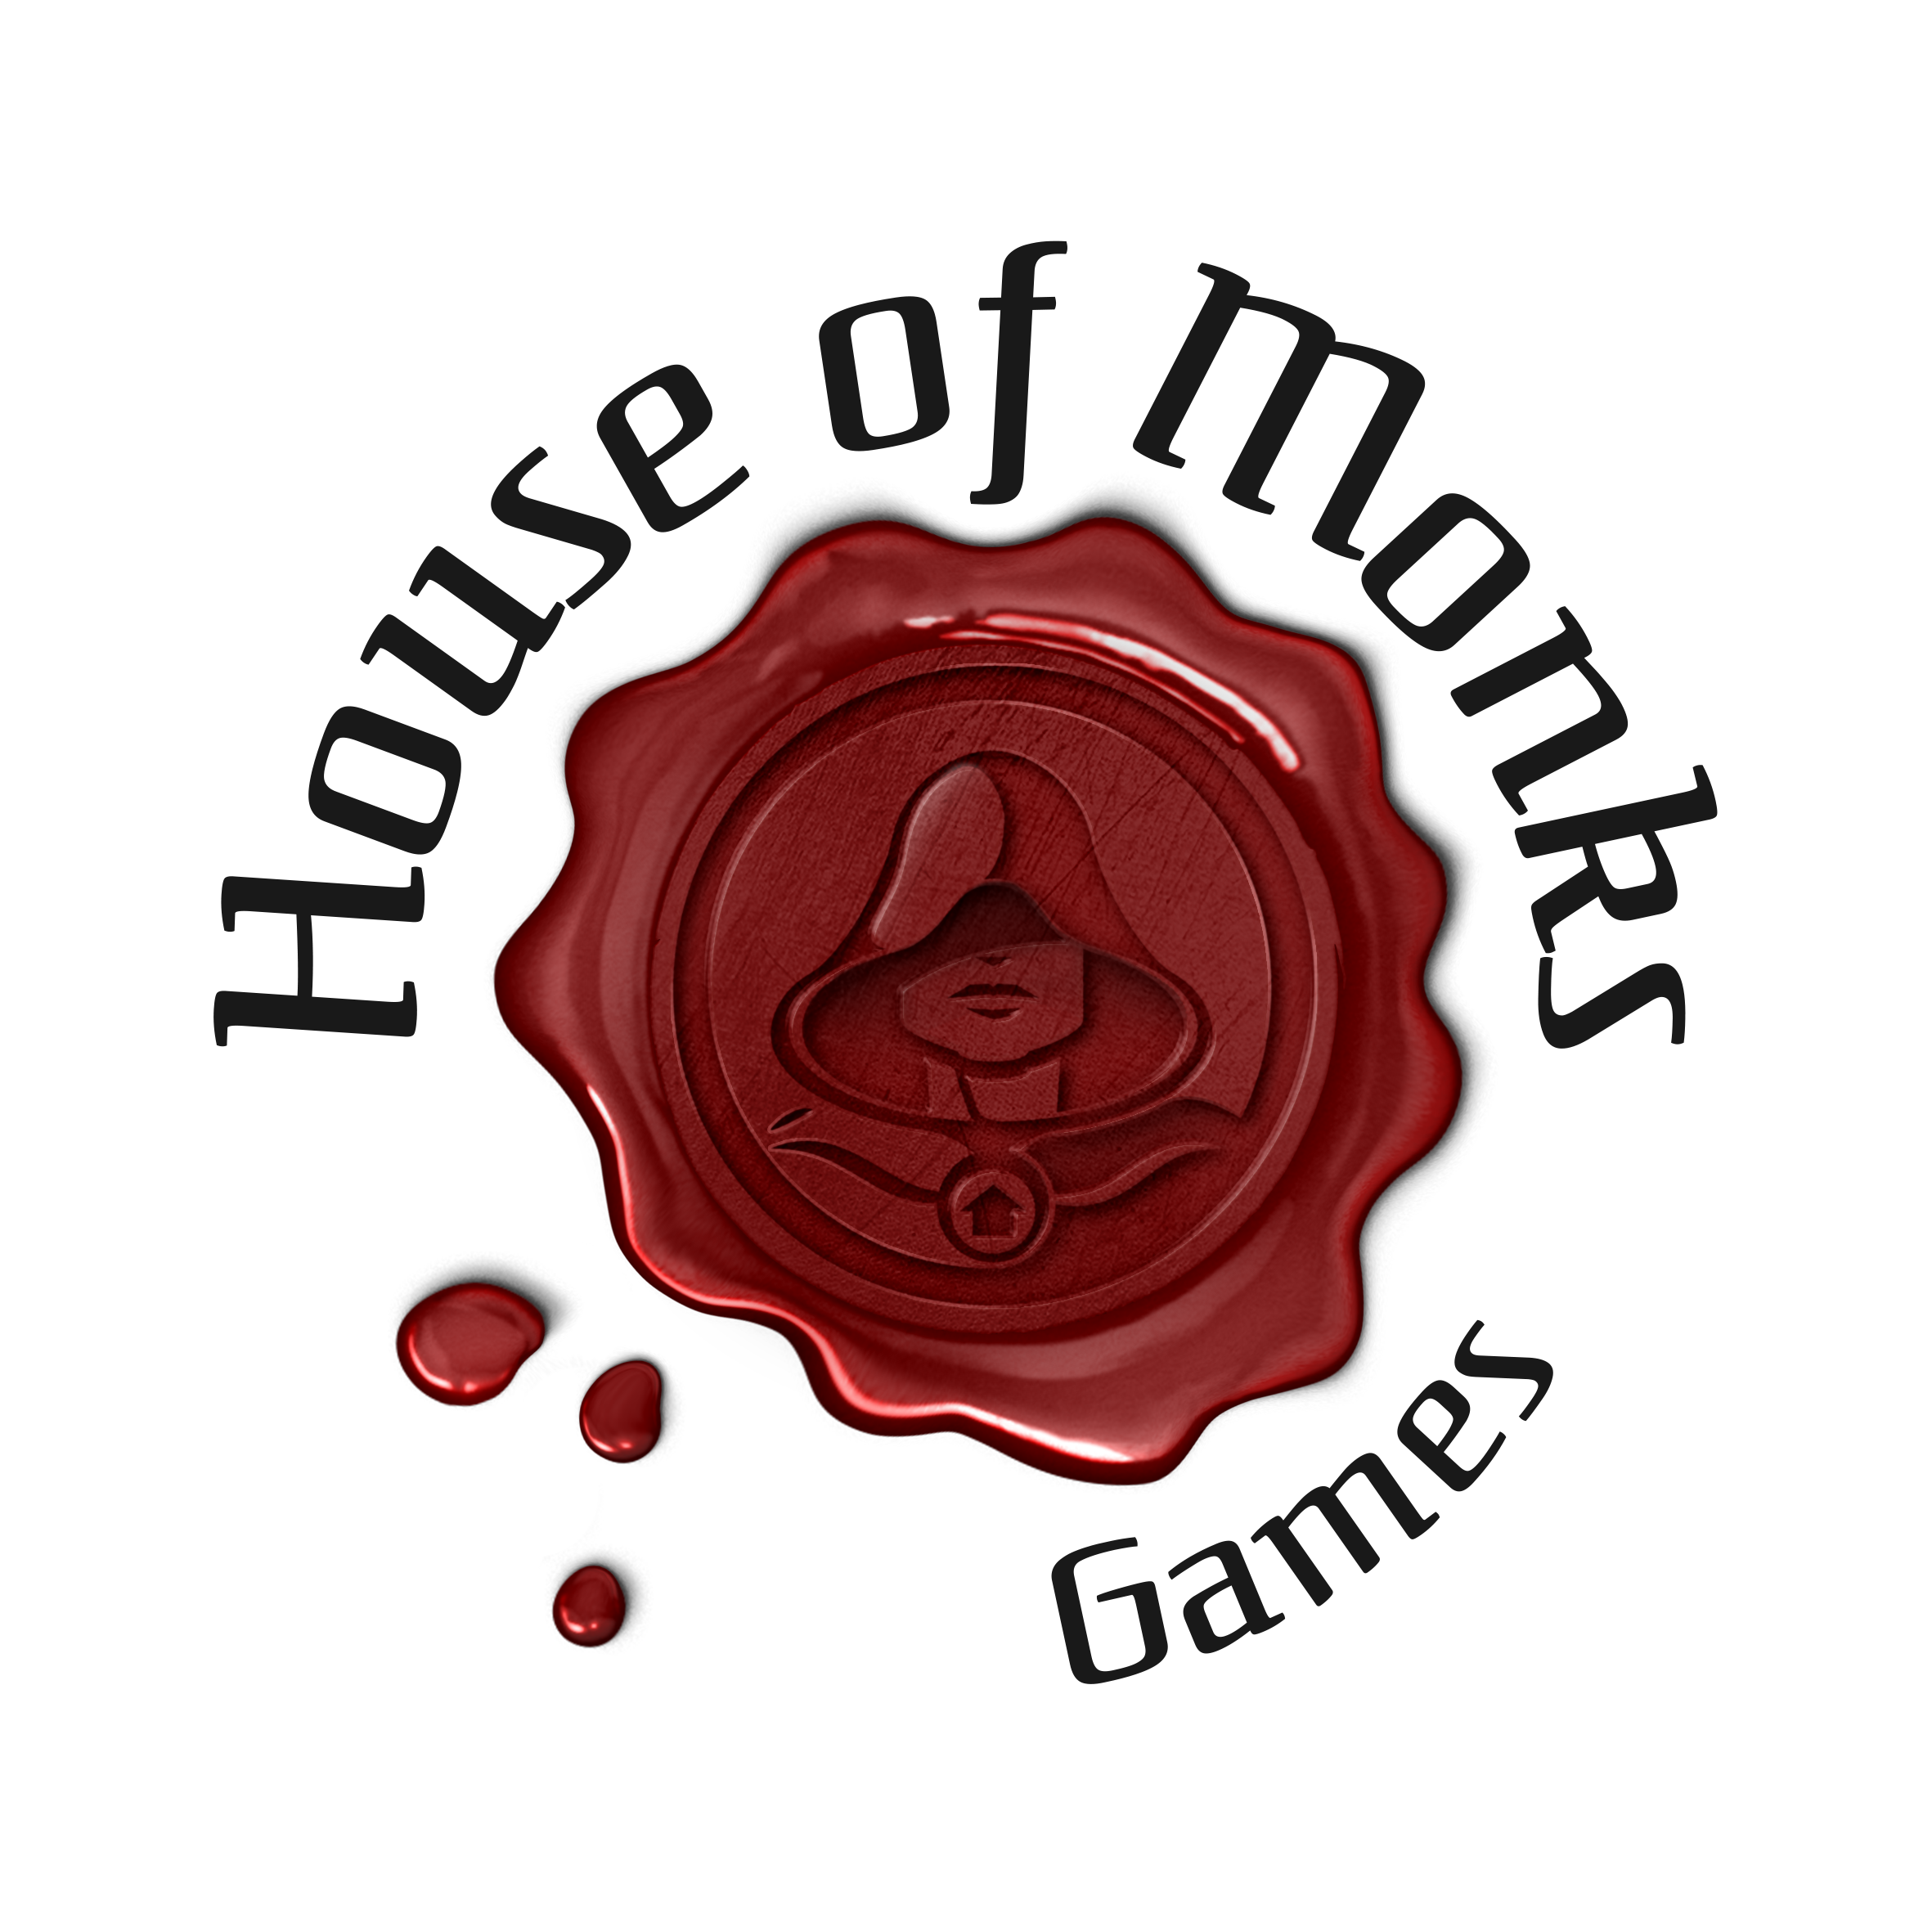 House of Monks Games